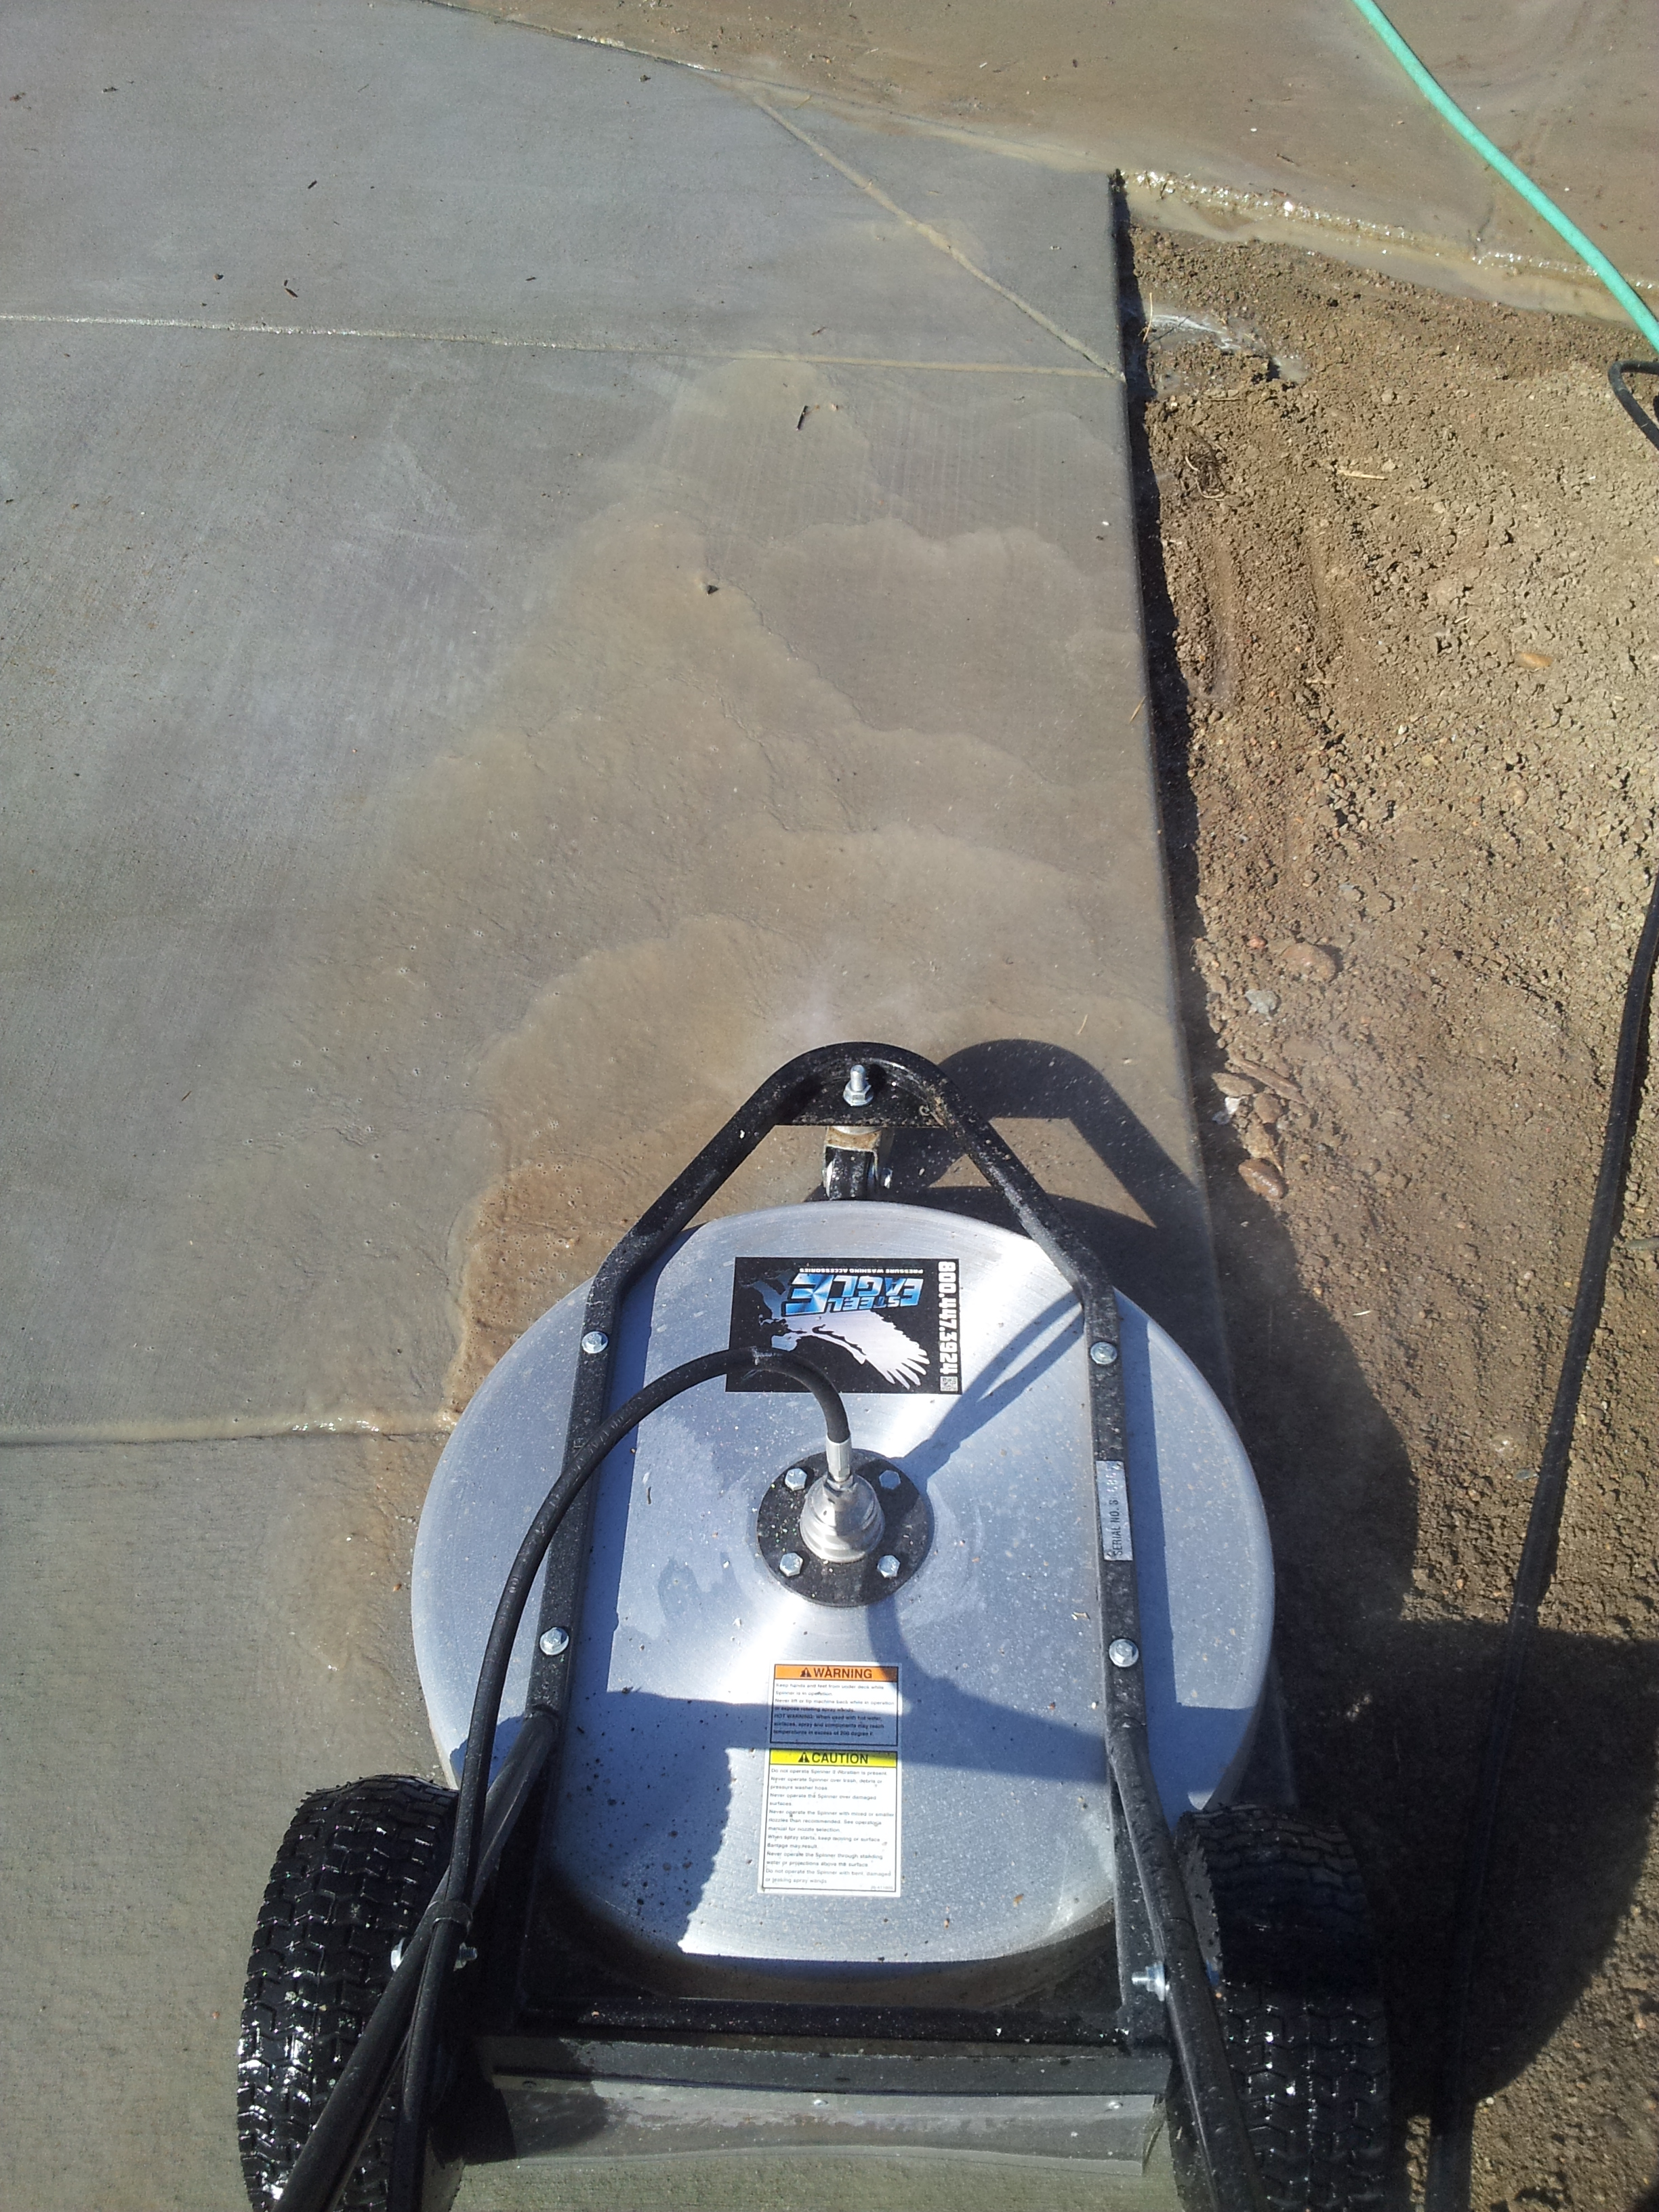 The deepest clean pressure washers offer!